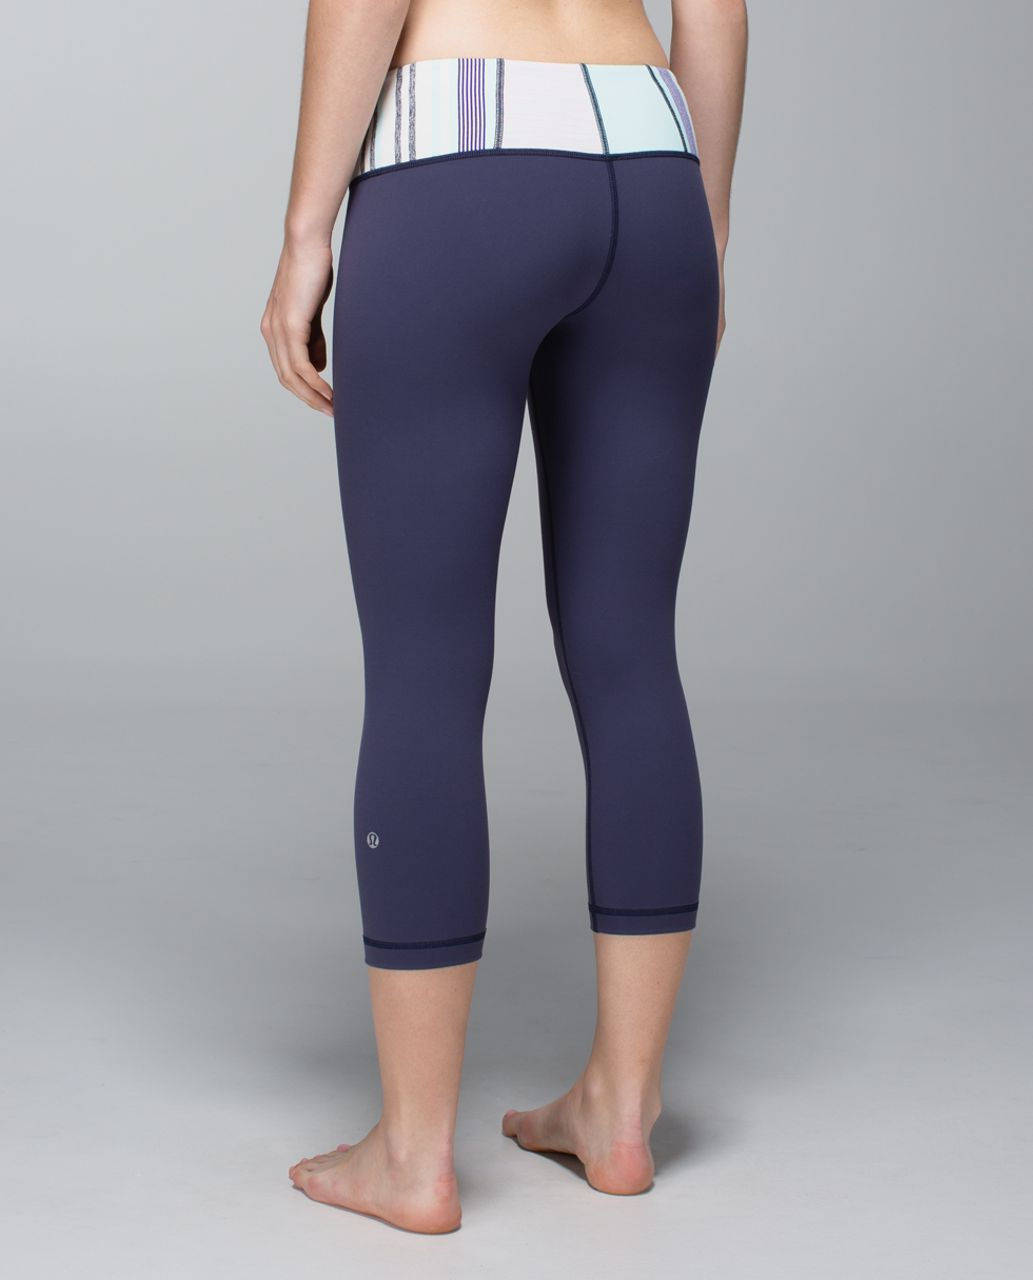 Lululemon Wunder Under Crop *Full-On Luon - Cadet Blue / Su14 Quilt 7